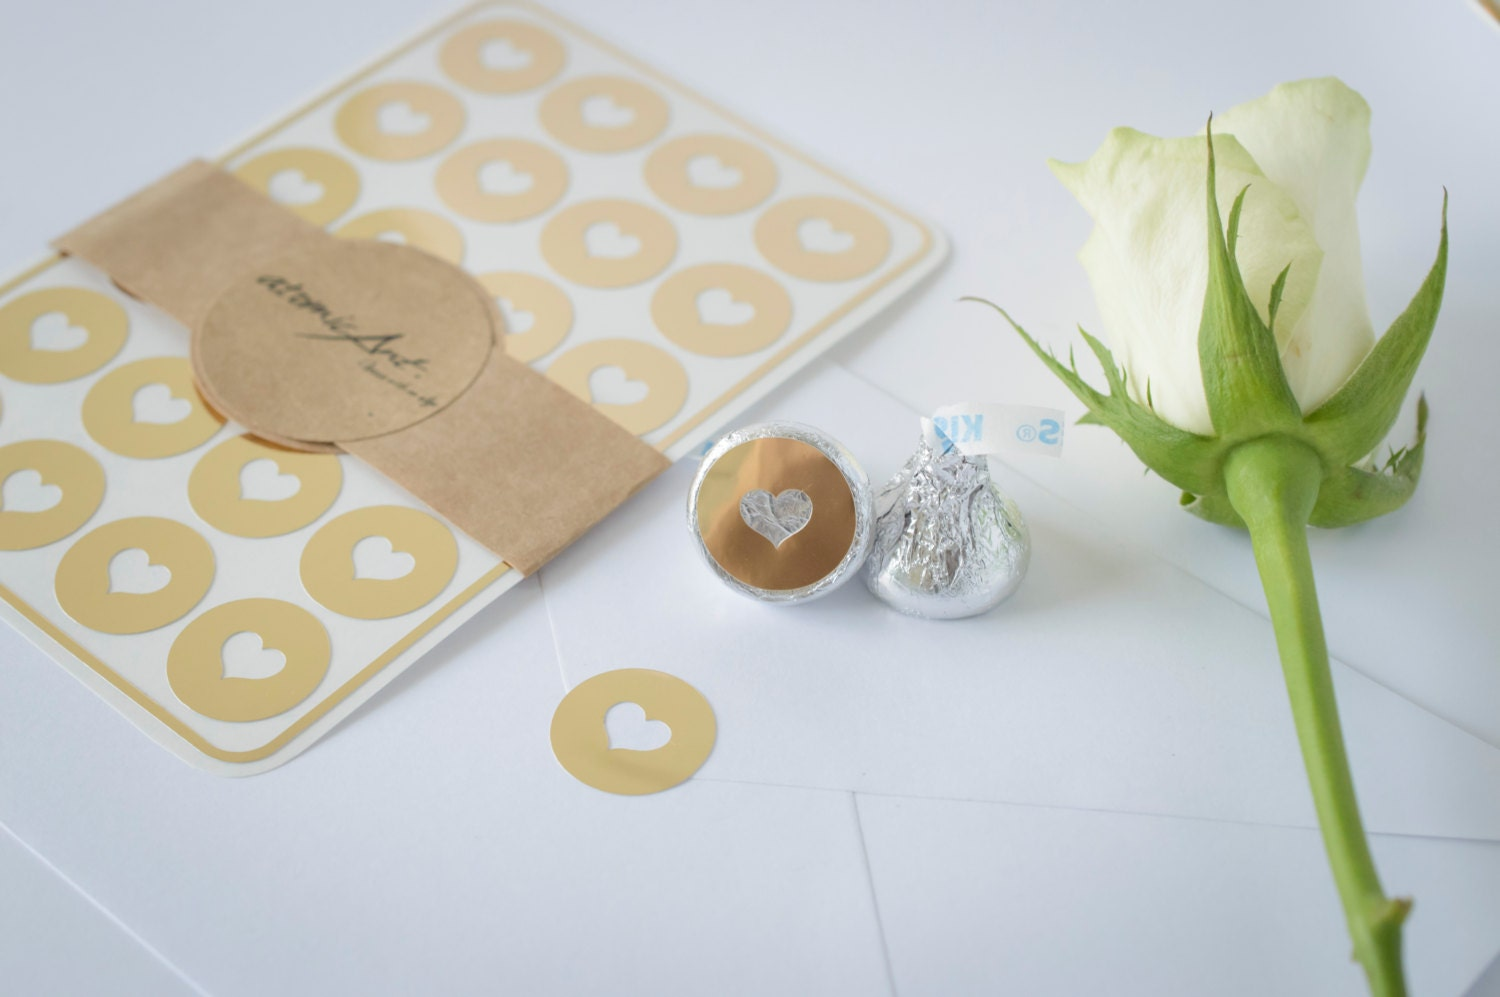 24 Envelope Seals in Gold Foil - Handmade Heart Stickers - Wedding ...